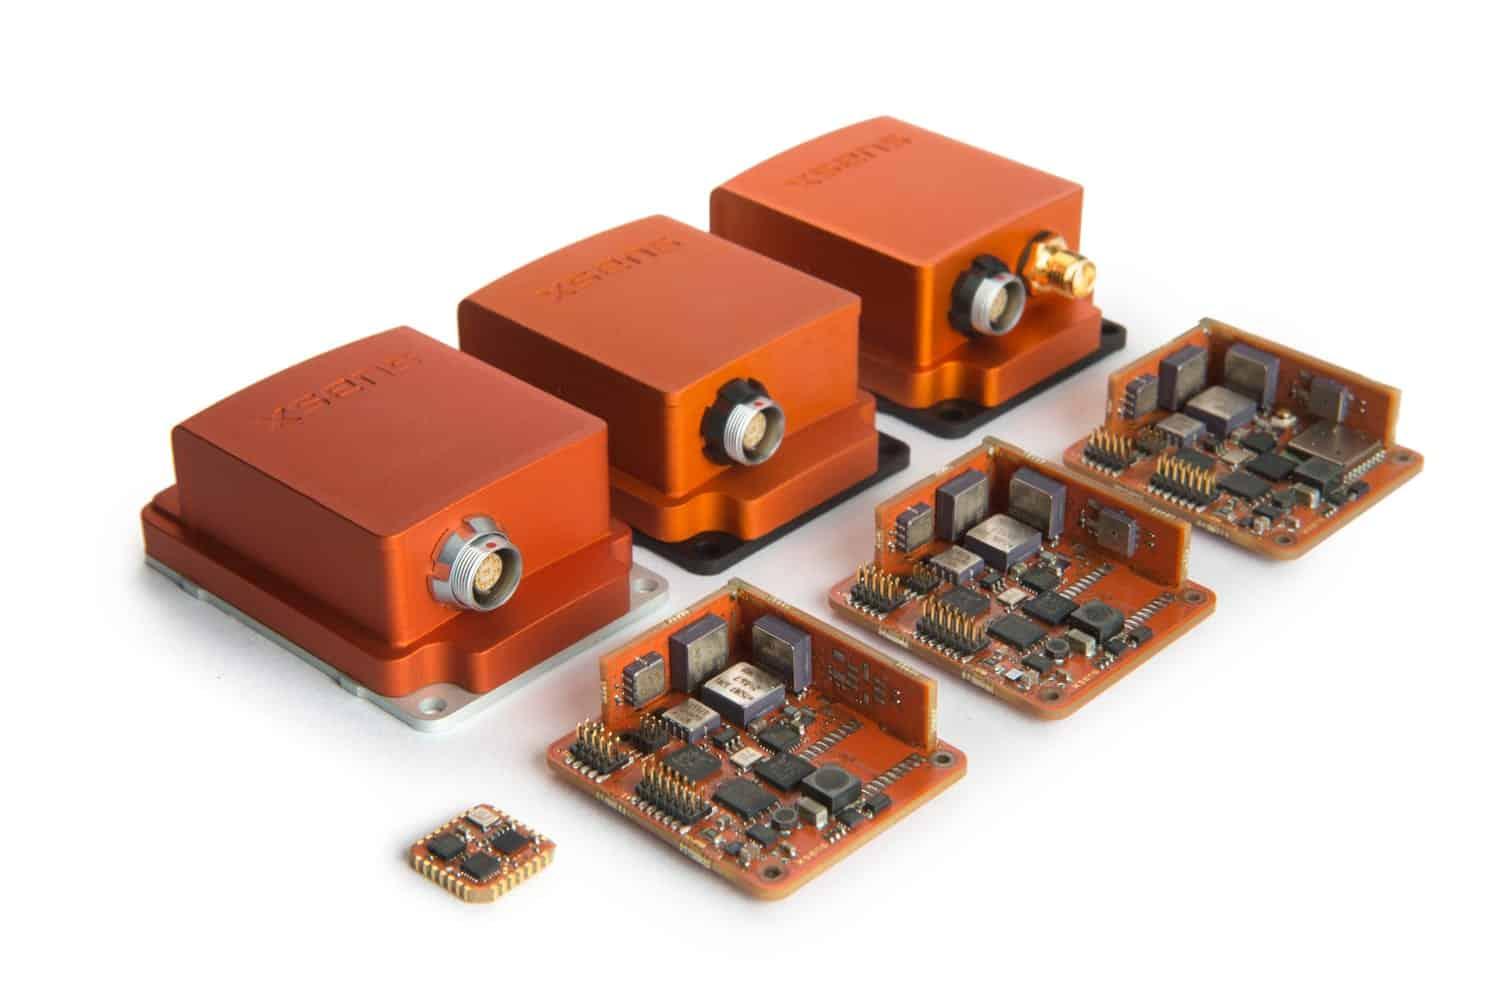 Xsens Develop Inertial Sensing Solutions For Unmanned